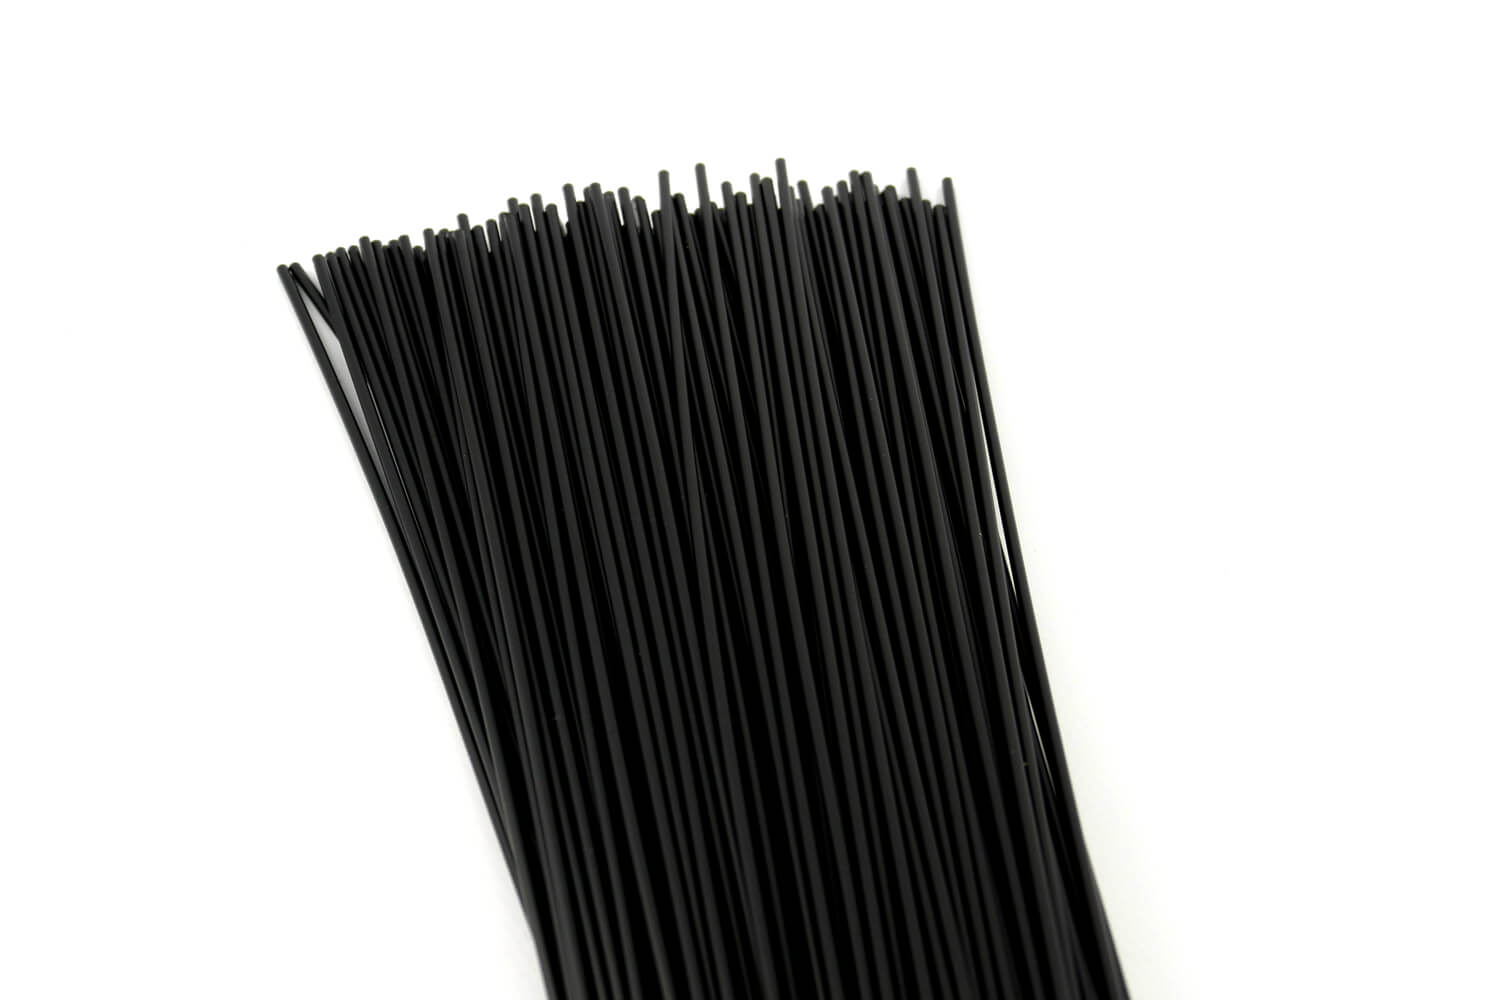 ABS Plastic Welding Rod